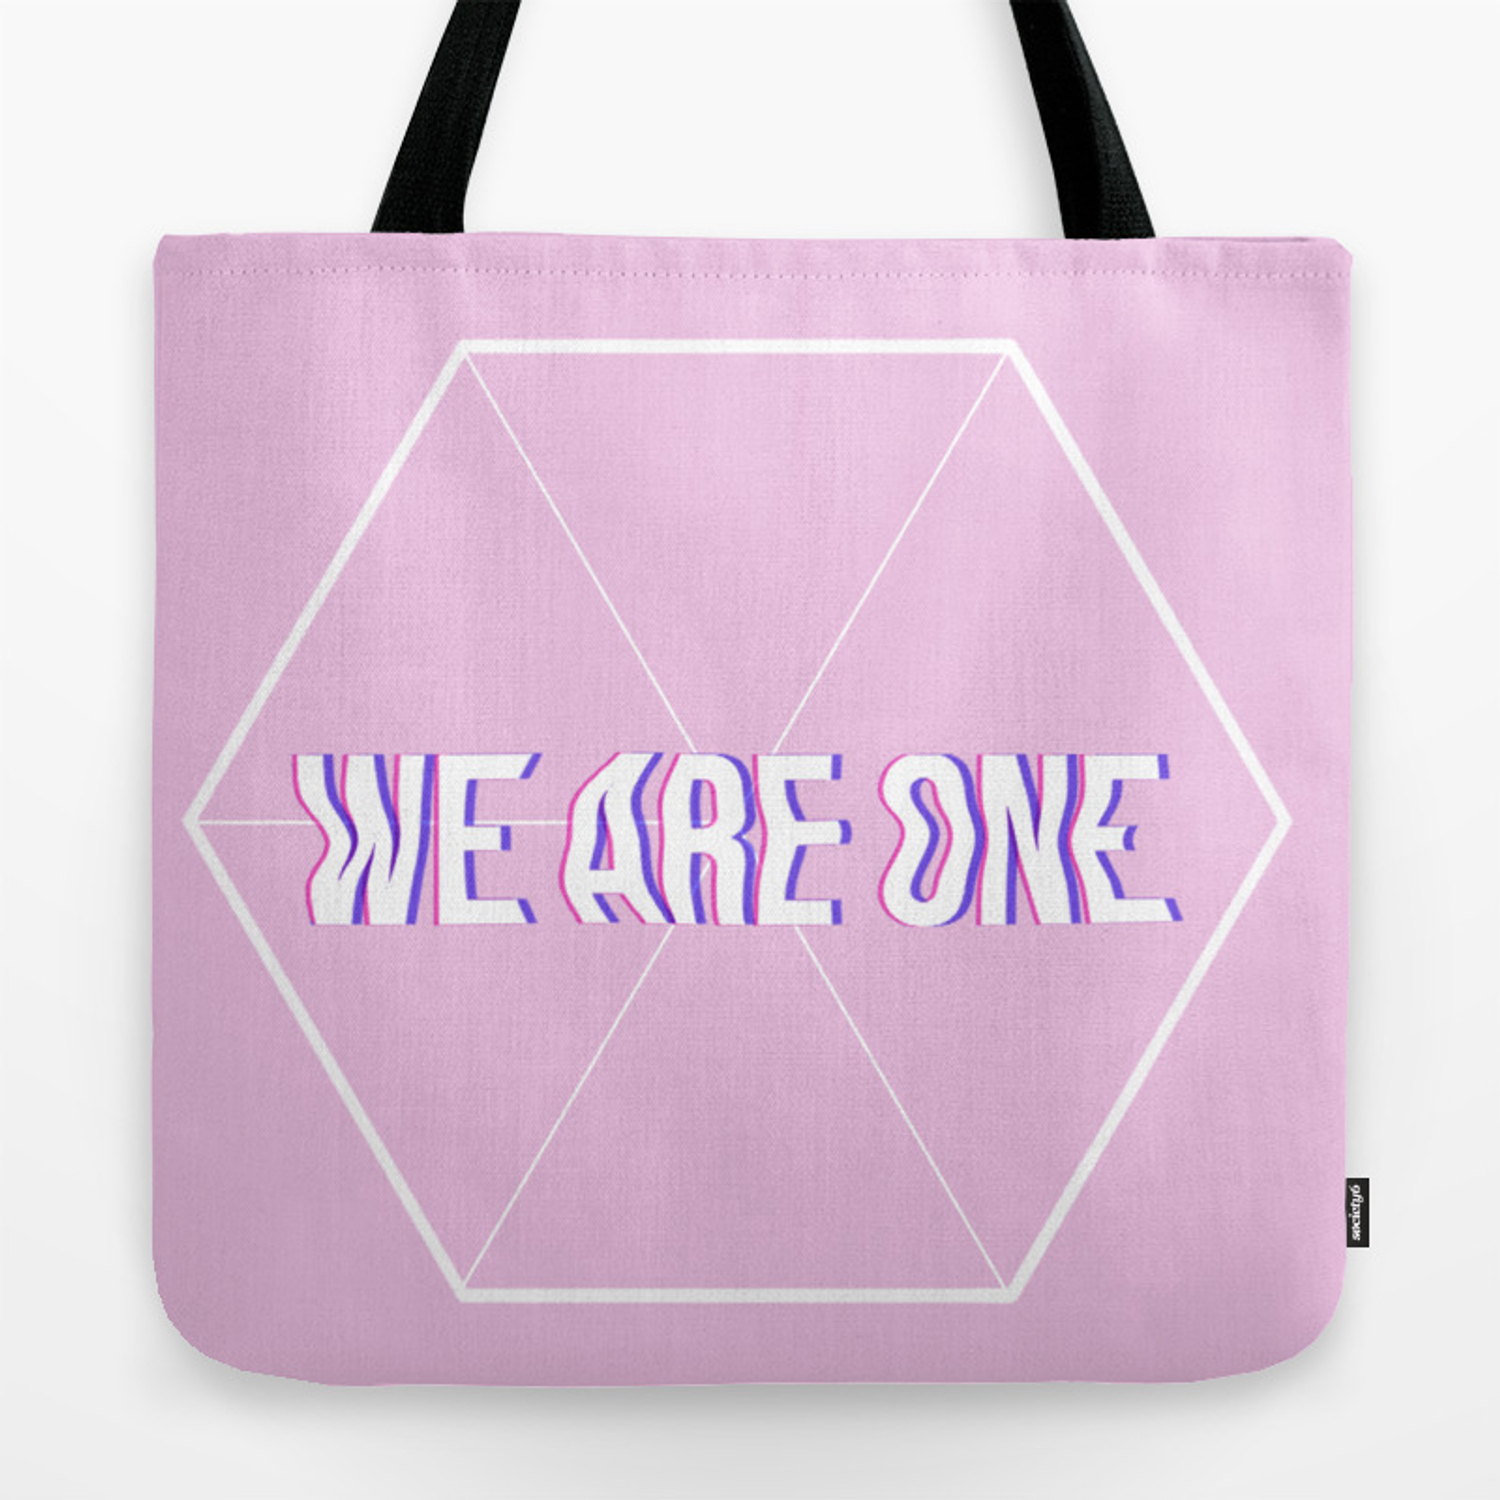 exo we are one bag